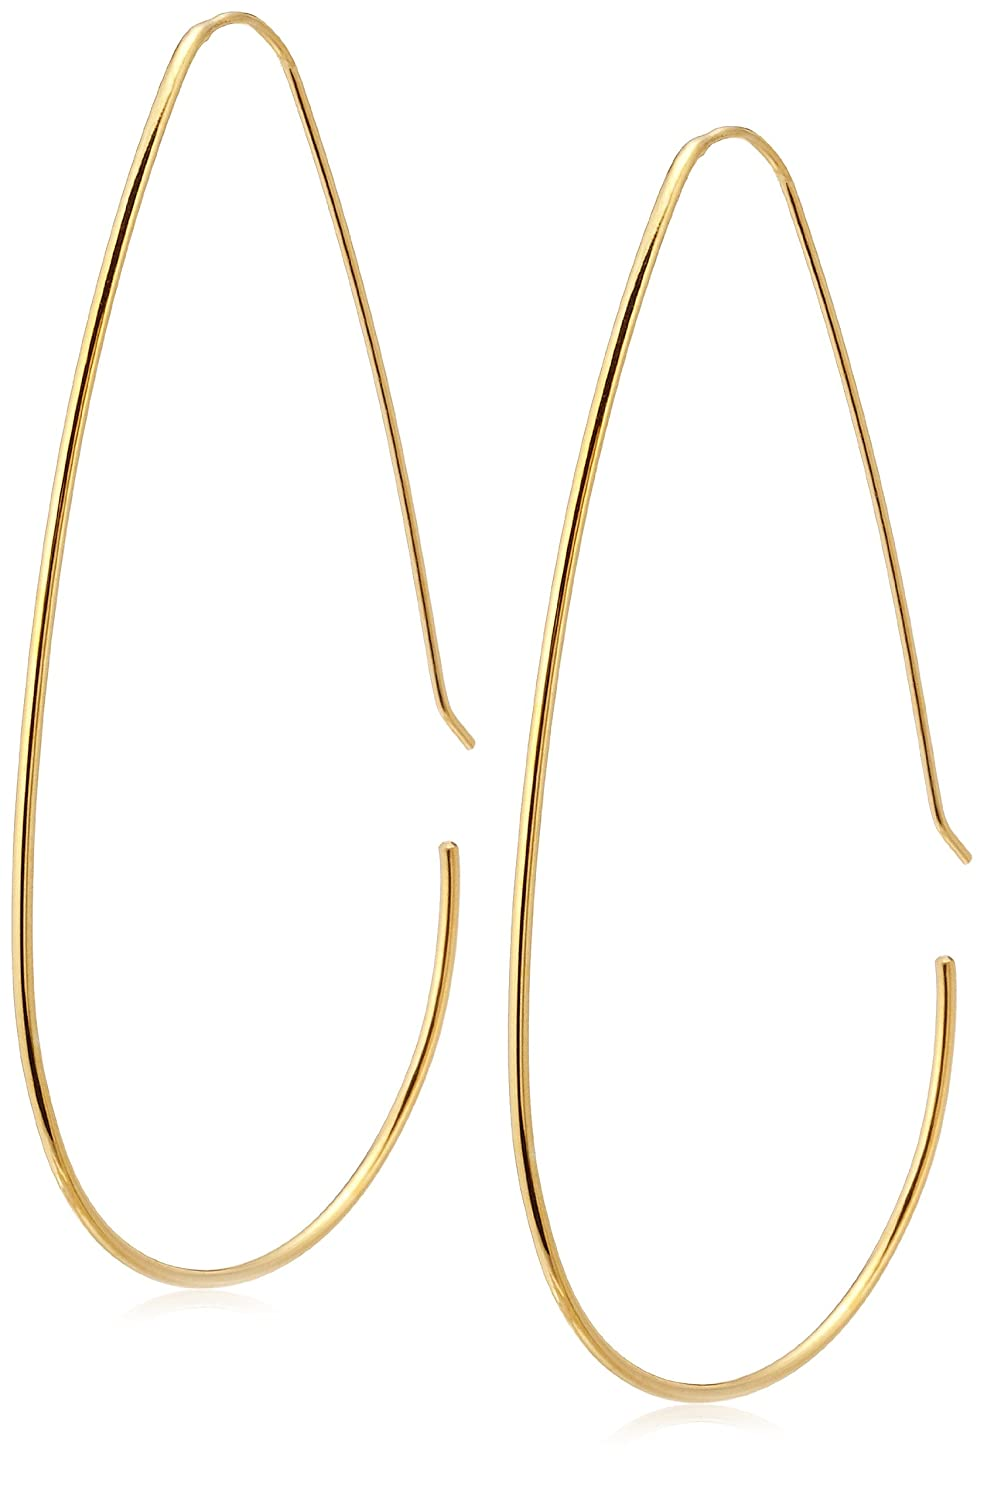 Amazon.co.jp: (ユナイテッドアローズ) UNITED ARROWS UA G DRP HOOP P 00 FREE 05 Gold 17336330848: ジュエリー通販